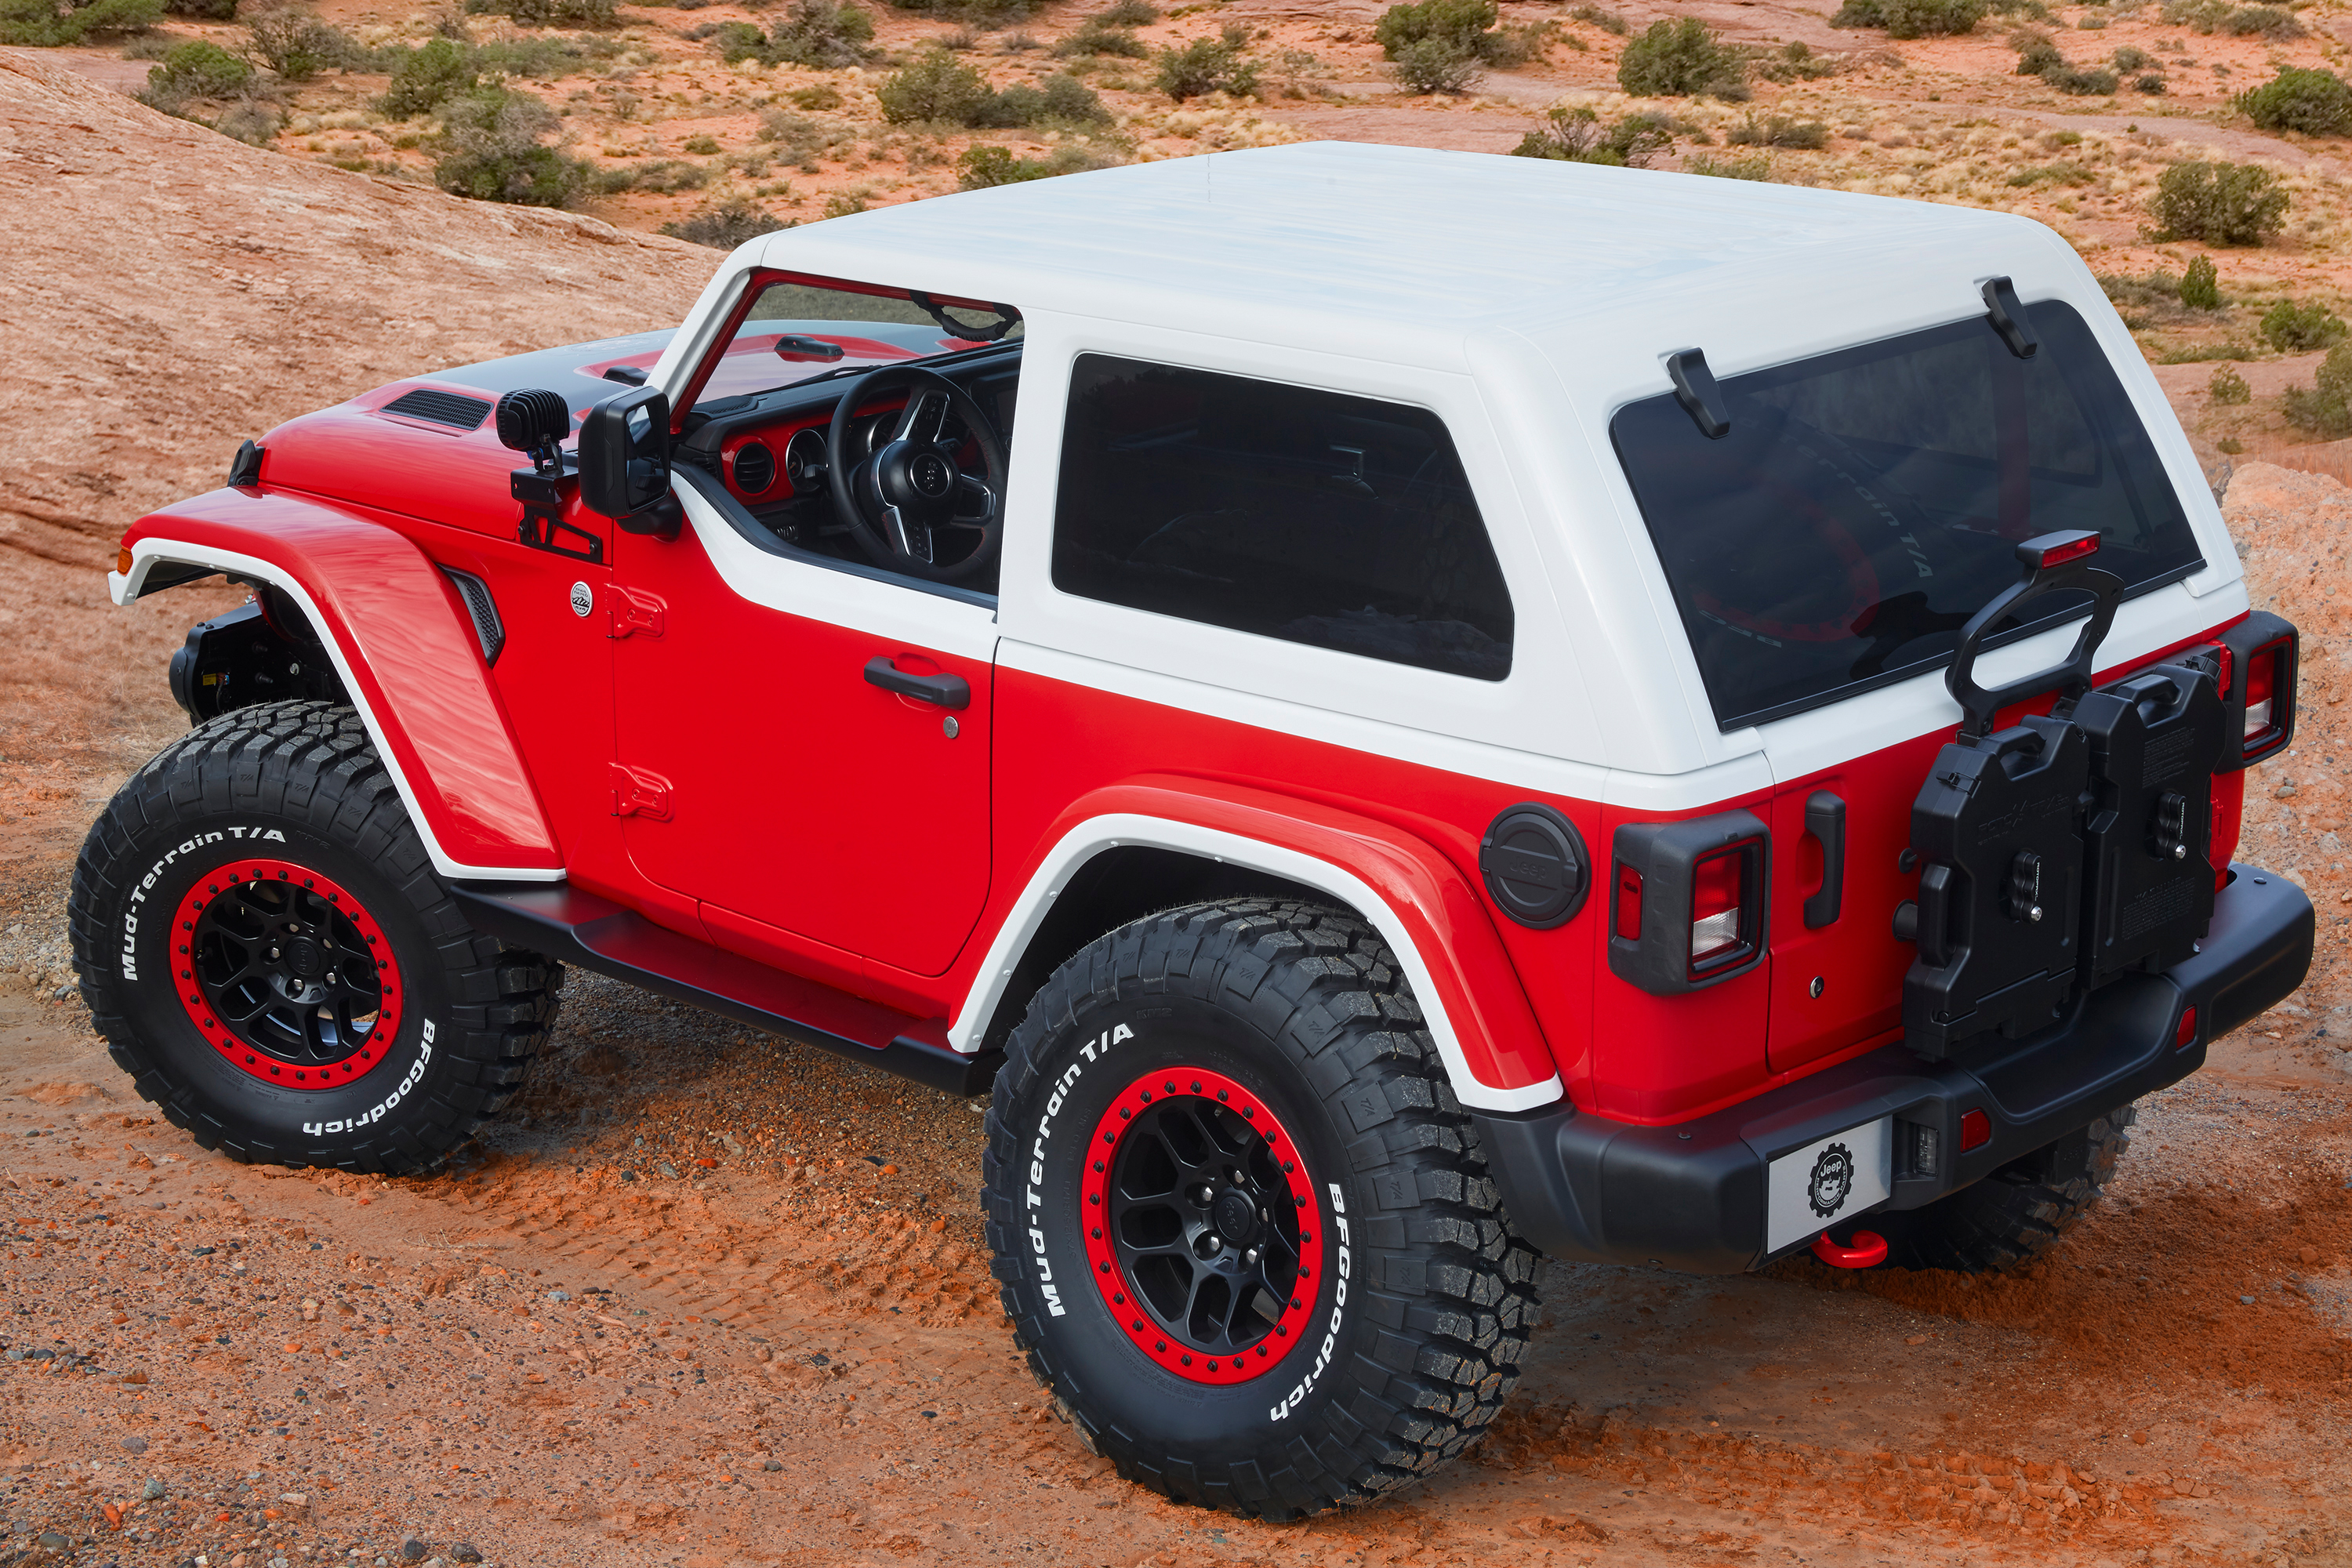 jeep brings new concept vehicles to easter jeep safari onallcylinders. Black Bedroom Furniture Sets. Home Design Ideas